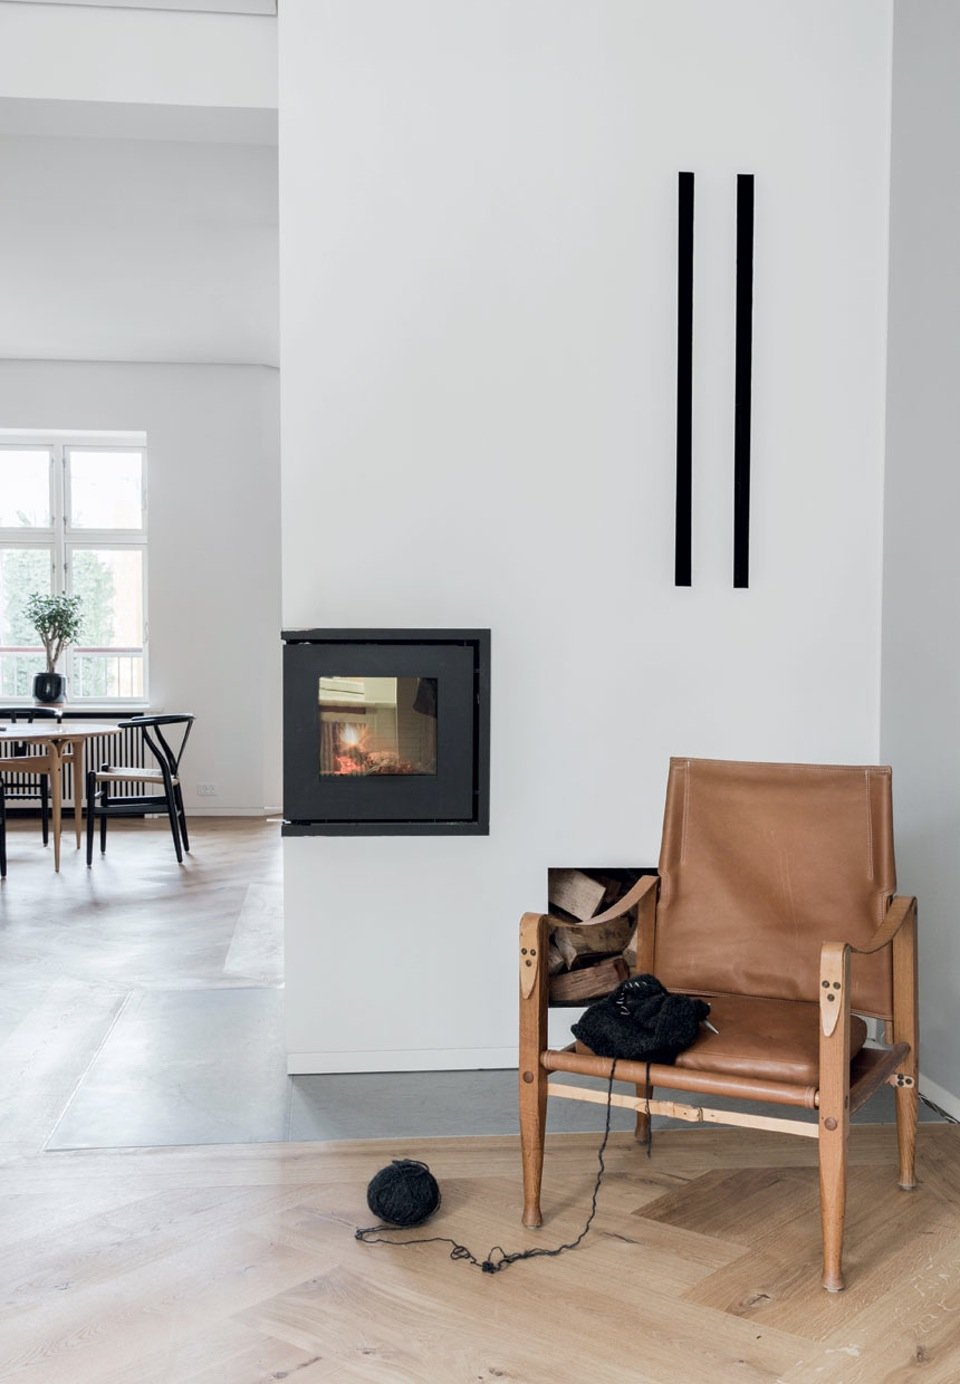 In a warm corner in front of the fireplace stands a Kaare Klint Safari Chair.